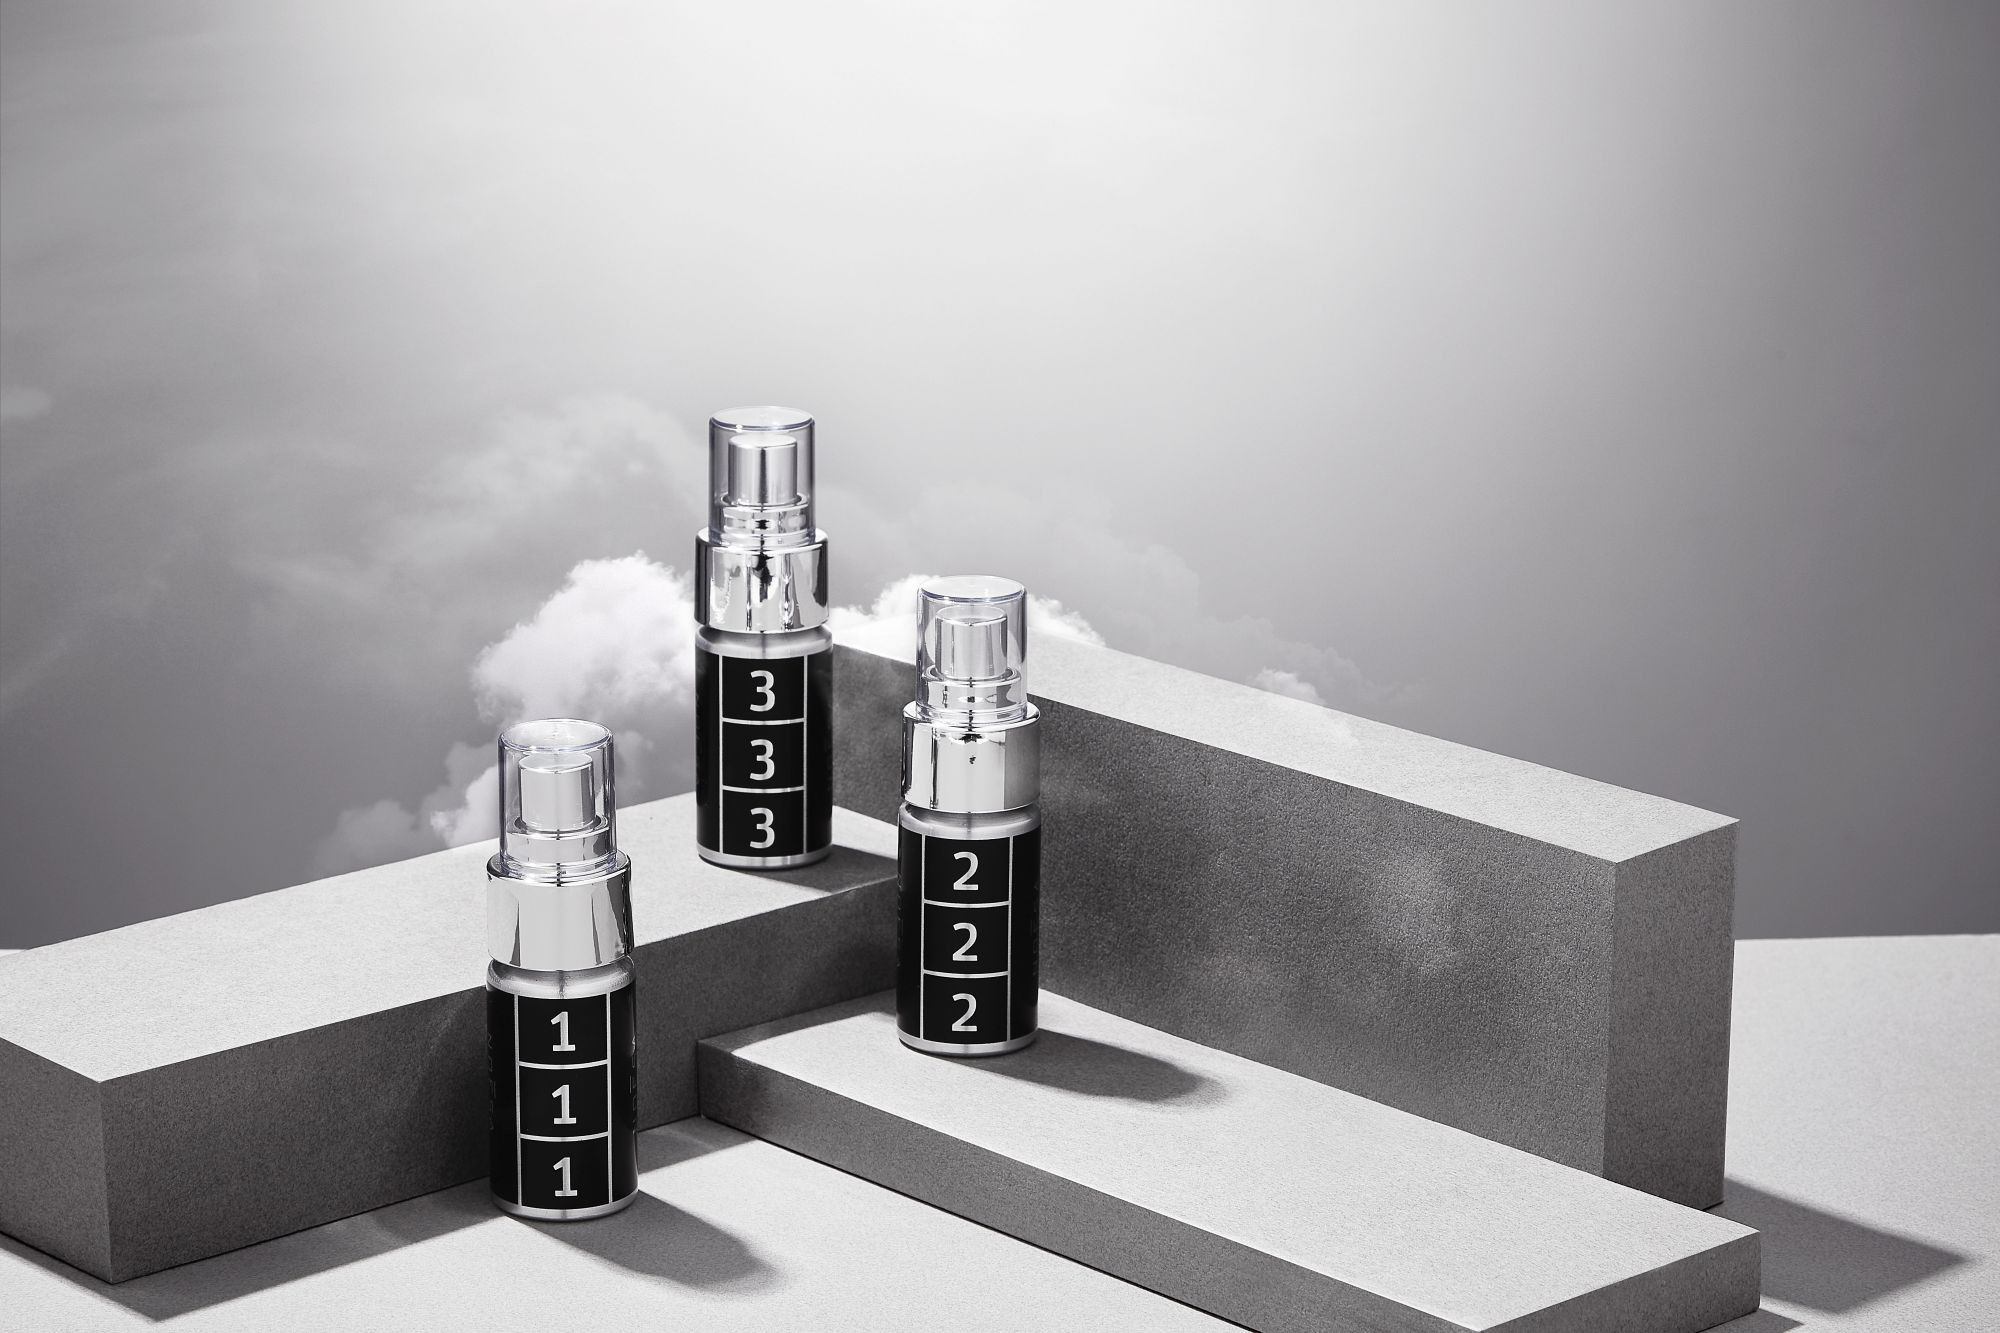 Tatler Reviews The Noesa #123 Serum Series, One Of The World's Most Expensive Skincare Lines